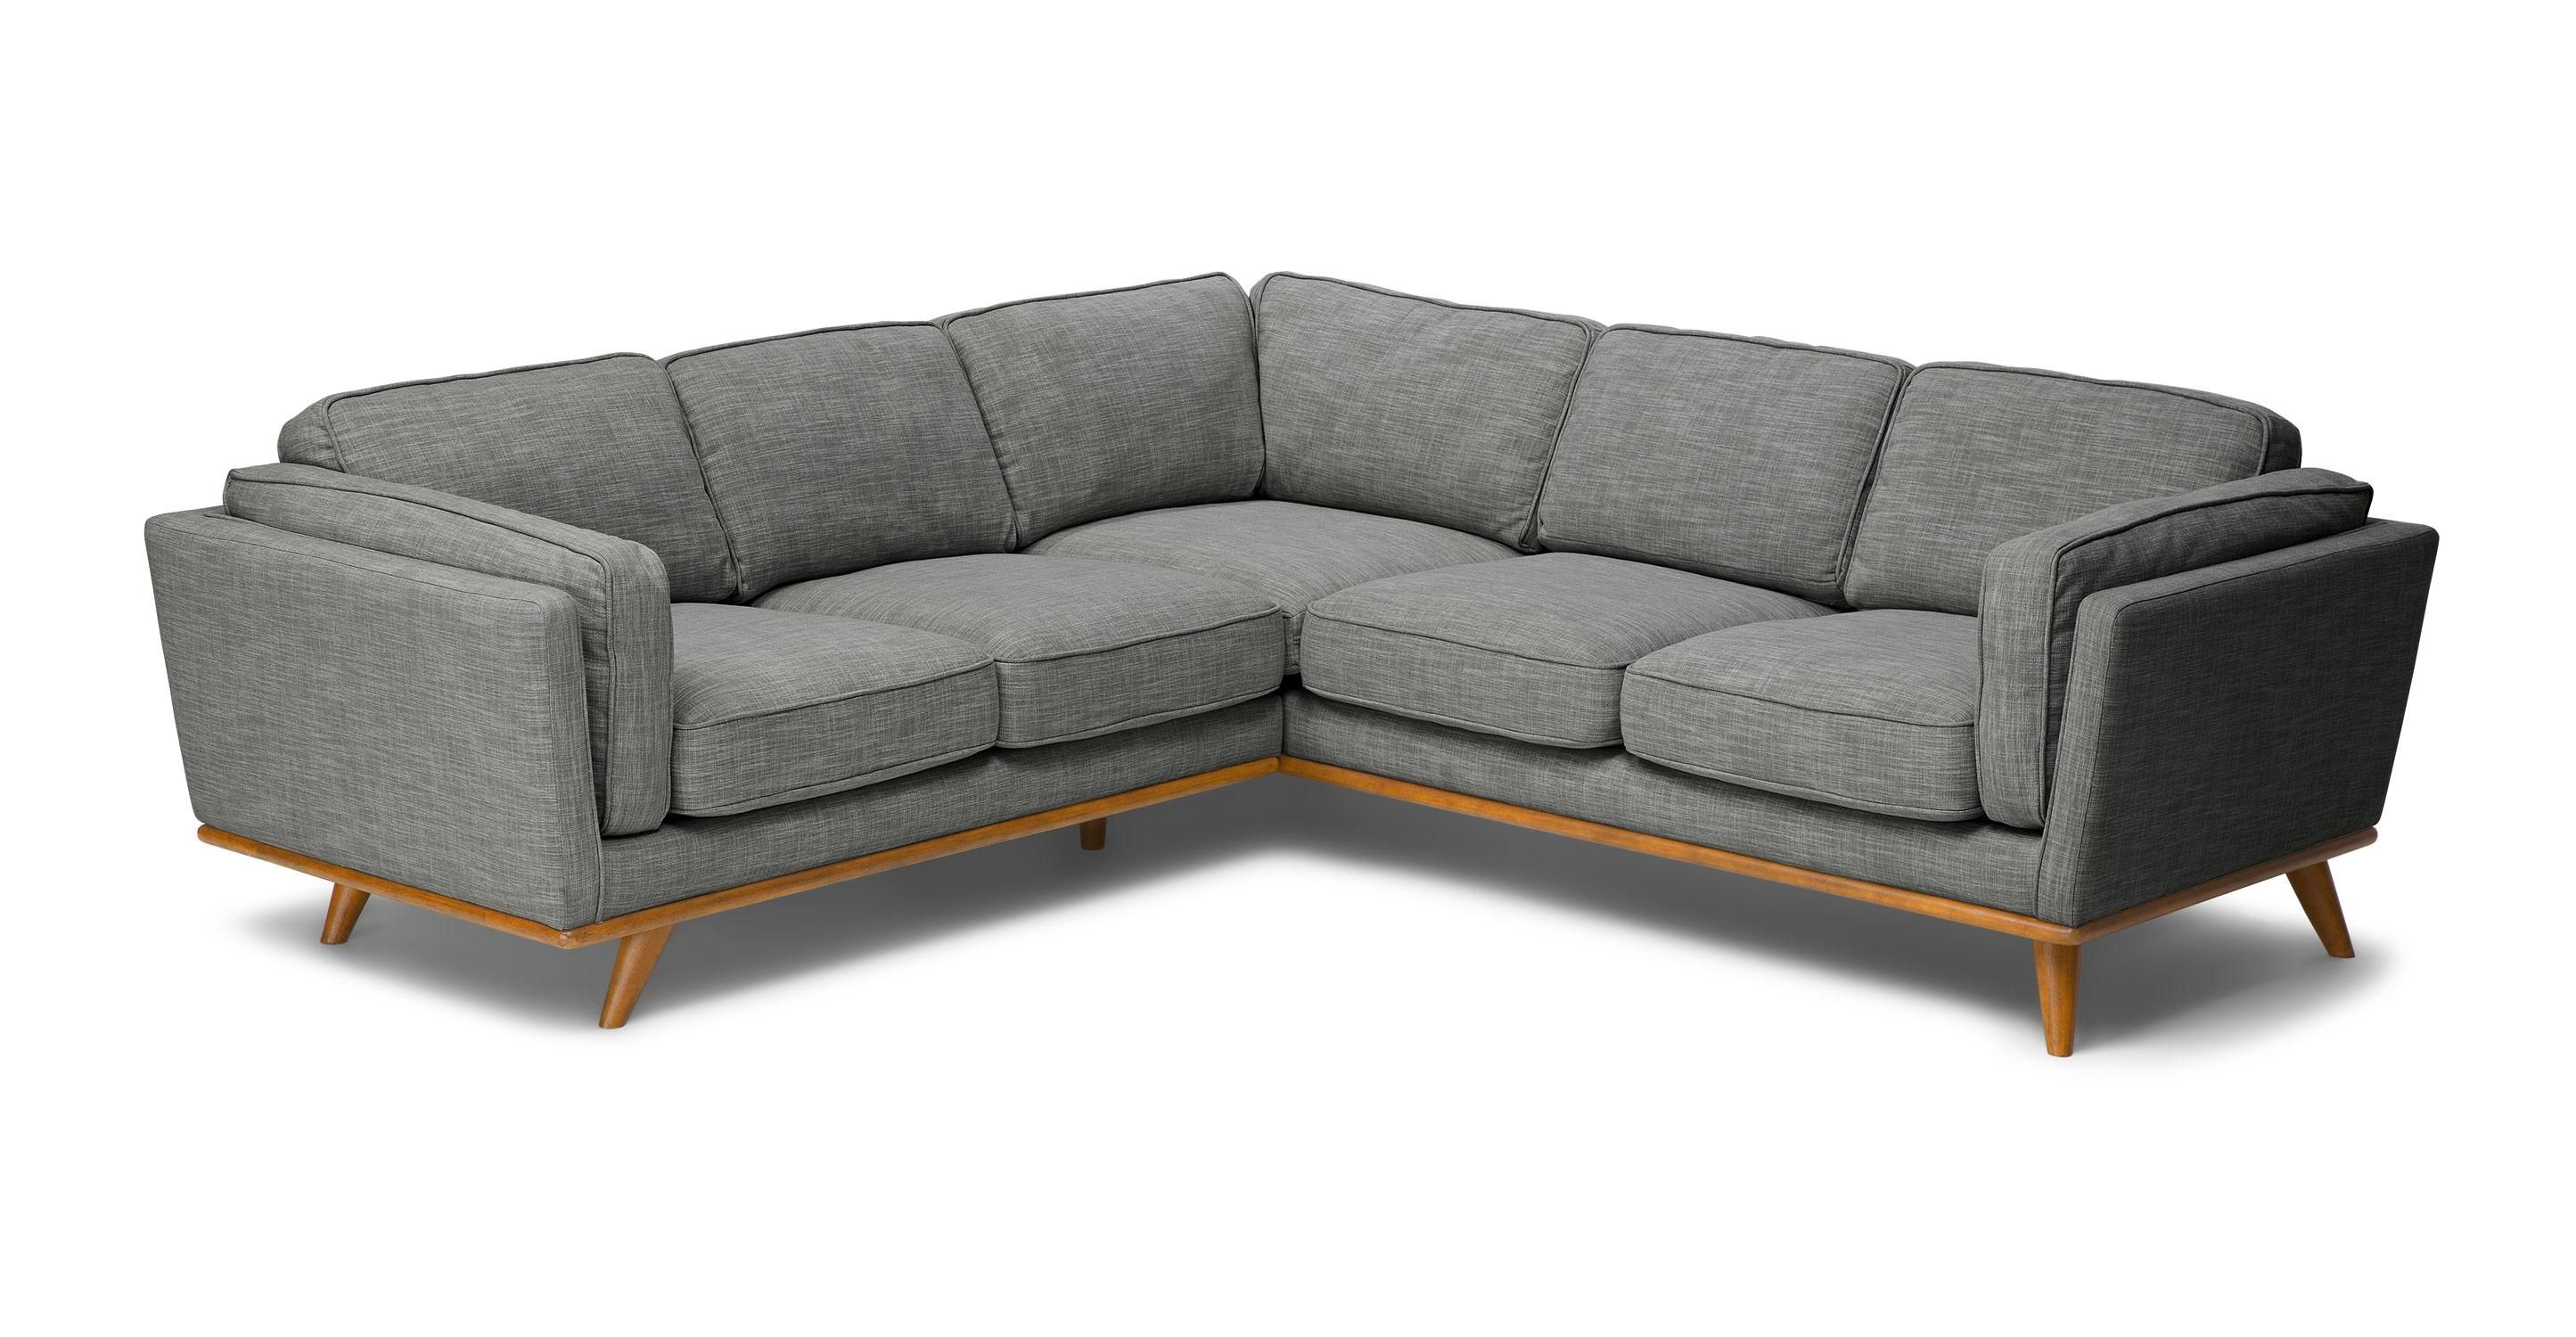 Sofas Center : Mid Century Modern Sectional Sofa Curved Style Pertaining To Mid Century Modern Sectional (Image 18 of 20)